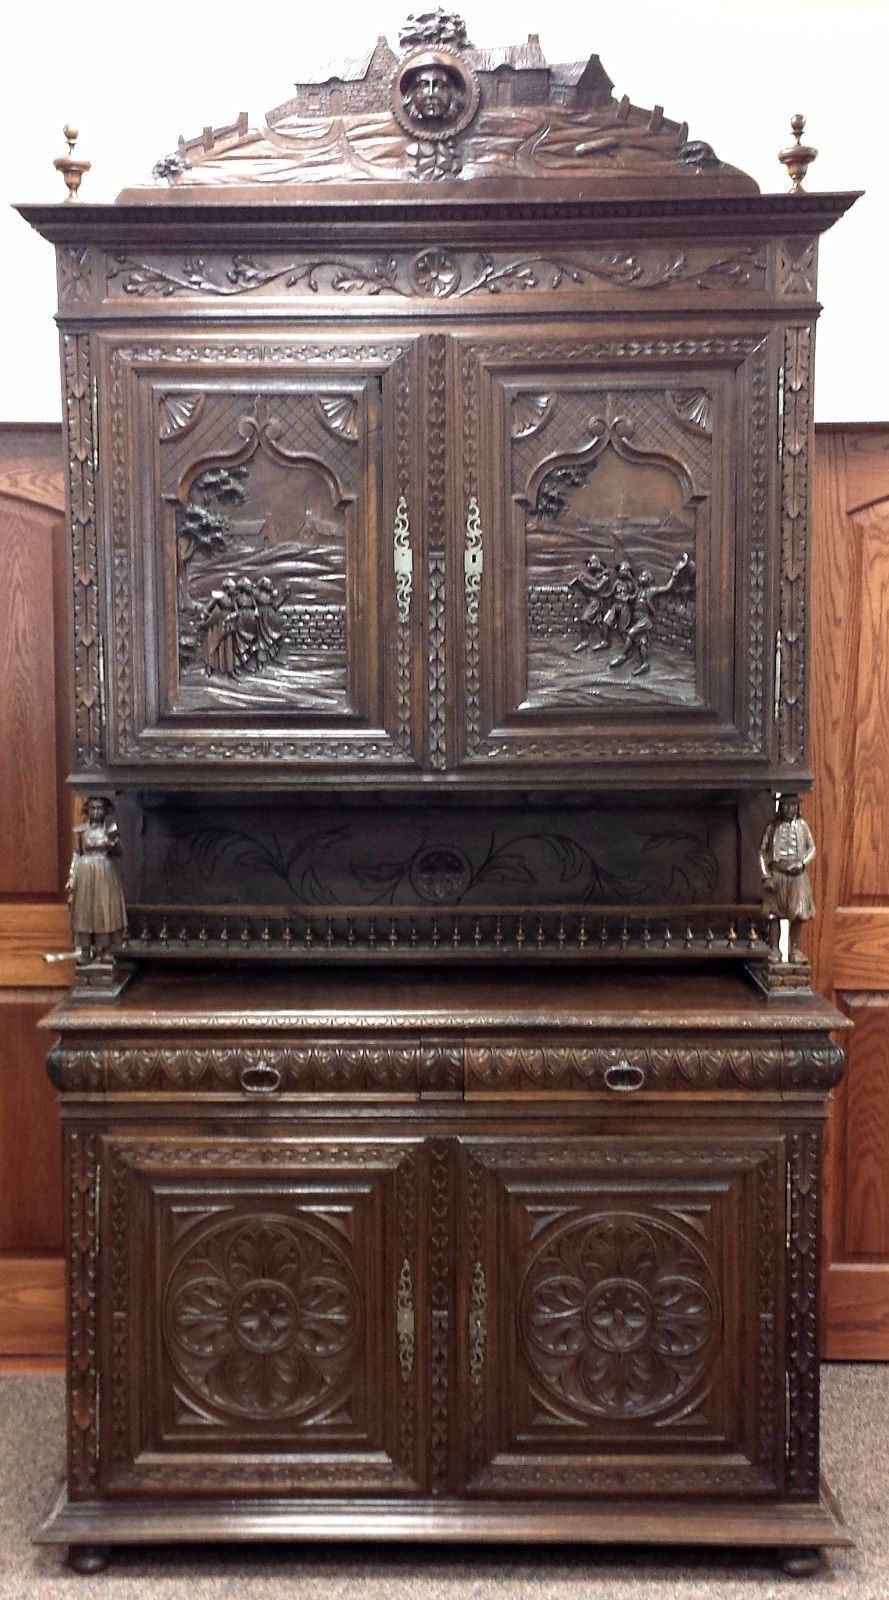 #Antiques #Gifts Antique Northern German carved wood scenic breakfront  cabinet! Intricate! # - Antiques #Gifts Antique Northern German Carved Wood Scenic